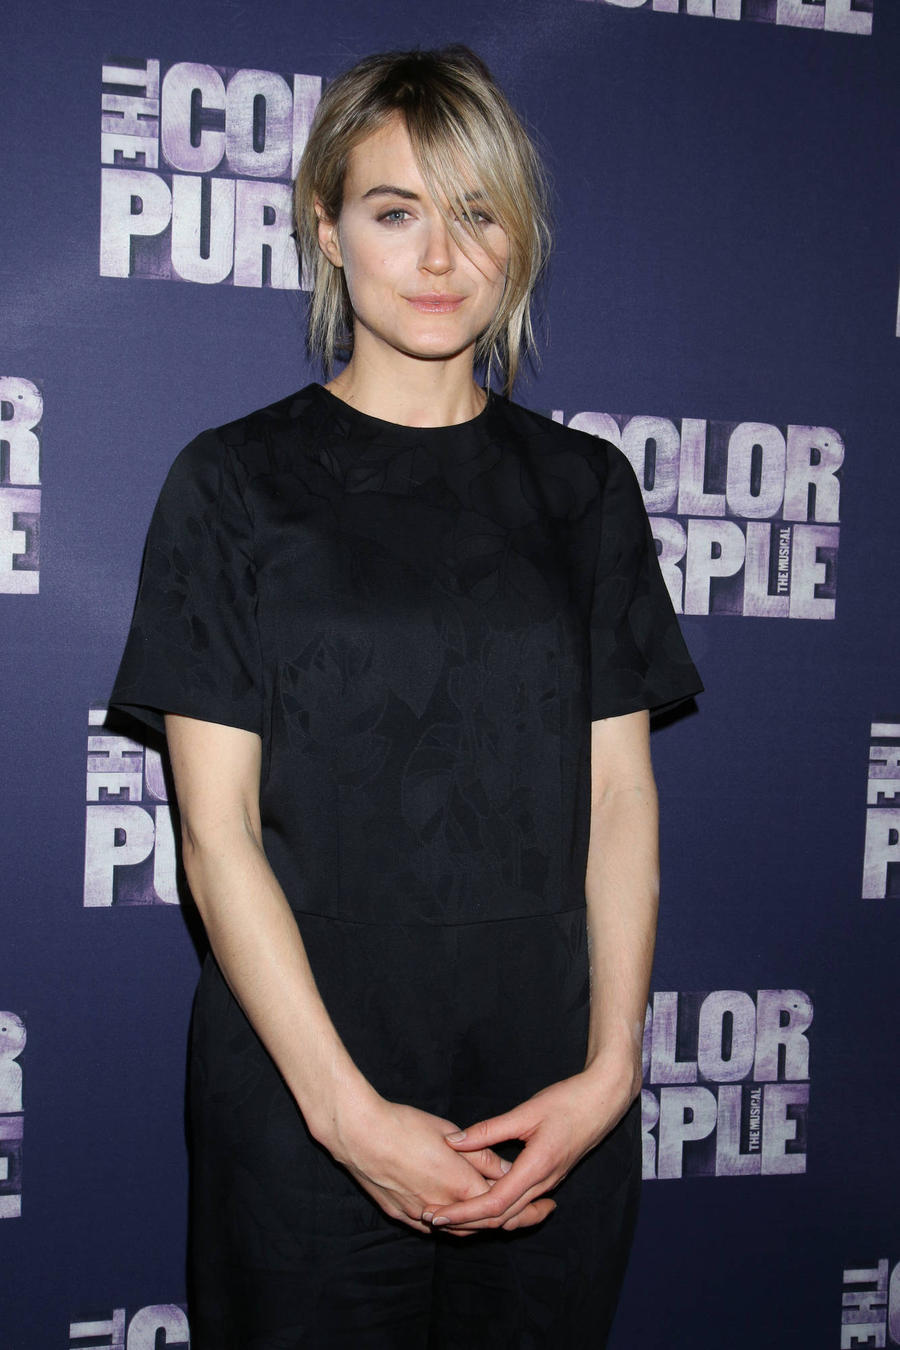 Taylor Schilling: 'Sex Scenes Are Pretty Easy Now'